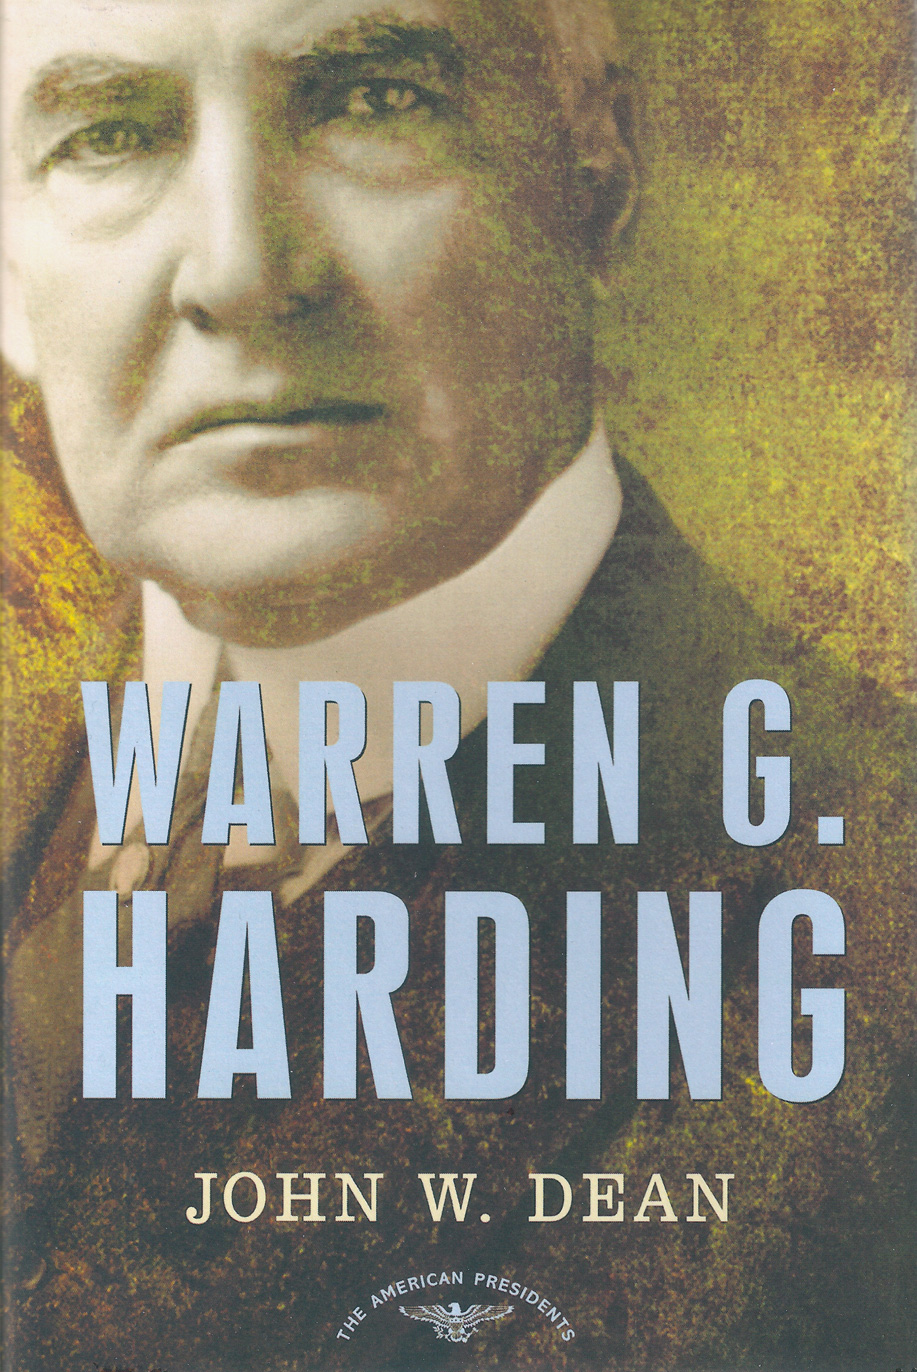 John Dean biogaphy of Warren G. Harding